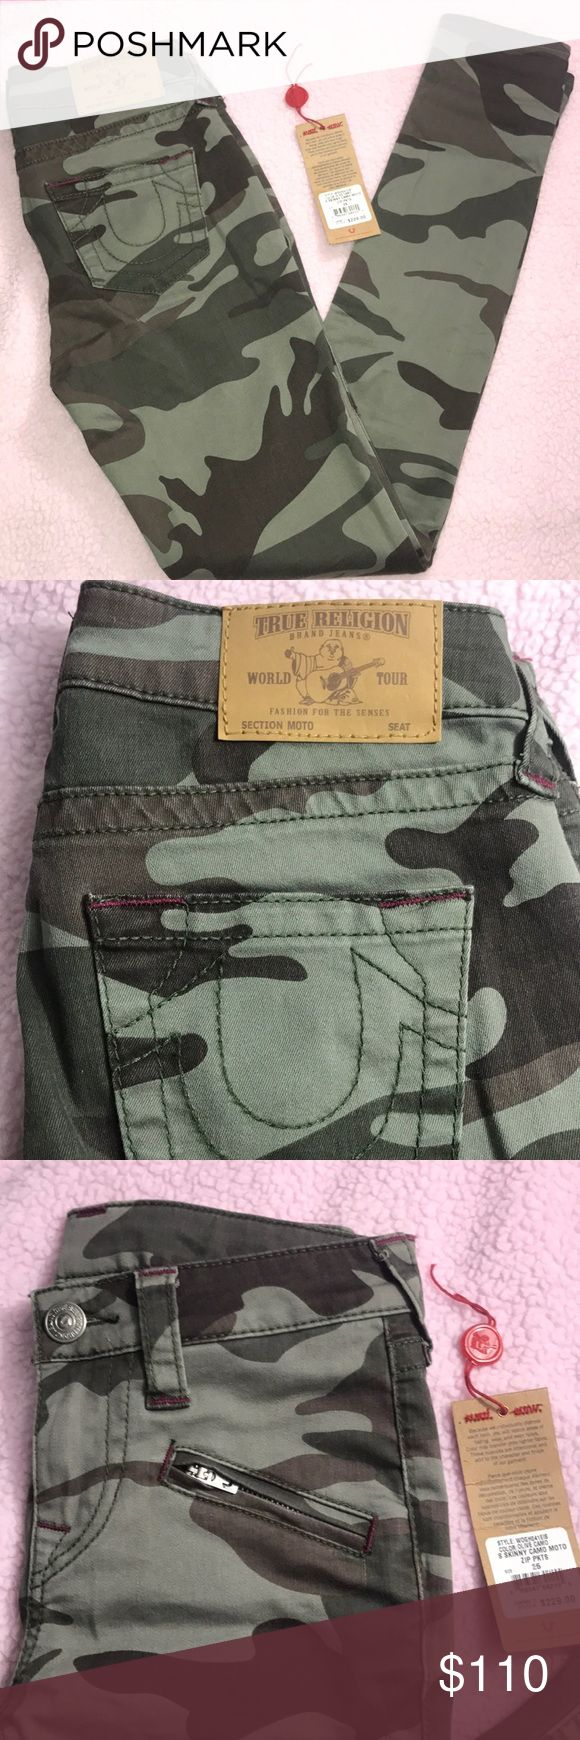 True Religion Camo skinny pants NWT True Religion Skinny mid rise moto pants, with zipper pockets. only tried on. never worn, PERFECT condition. True Religion Pants Skinny